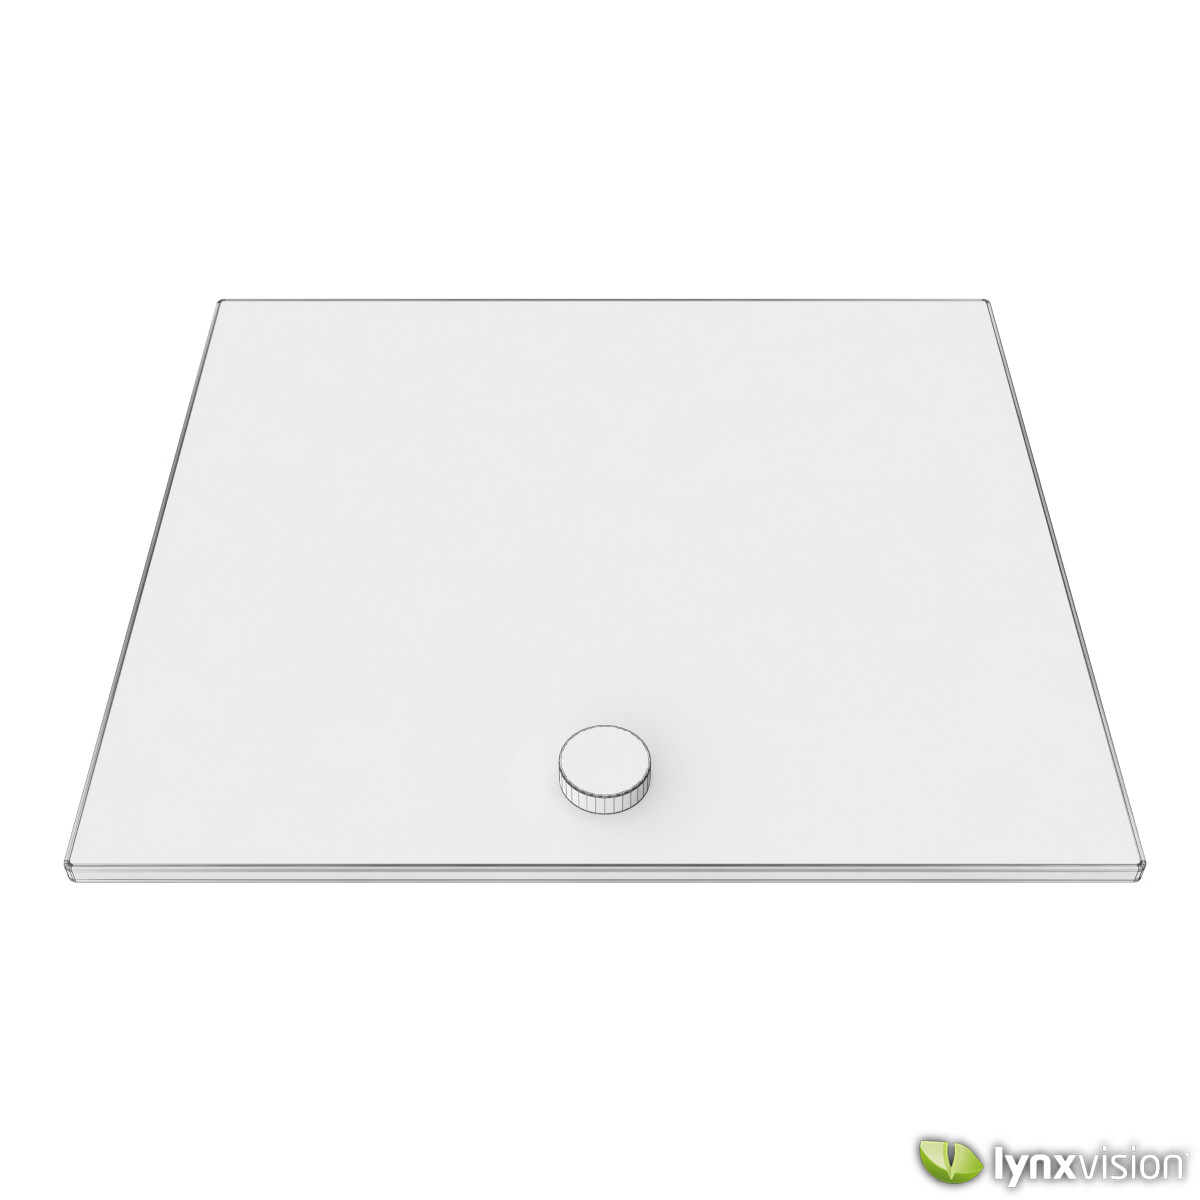 Gaggenau induction cooktop 3d model max obj fbx for Table induction bosch